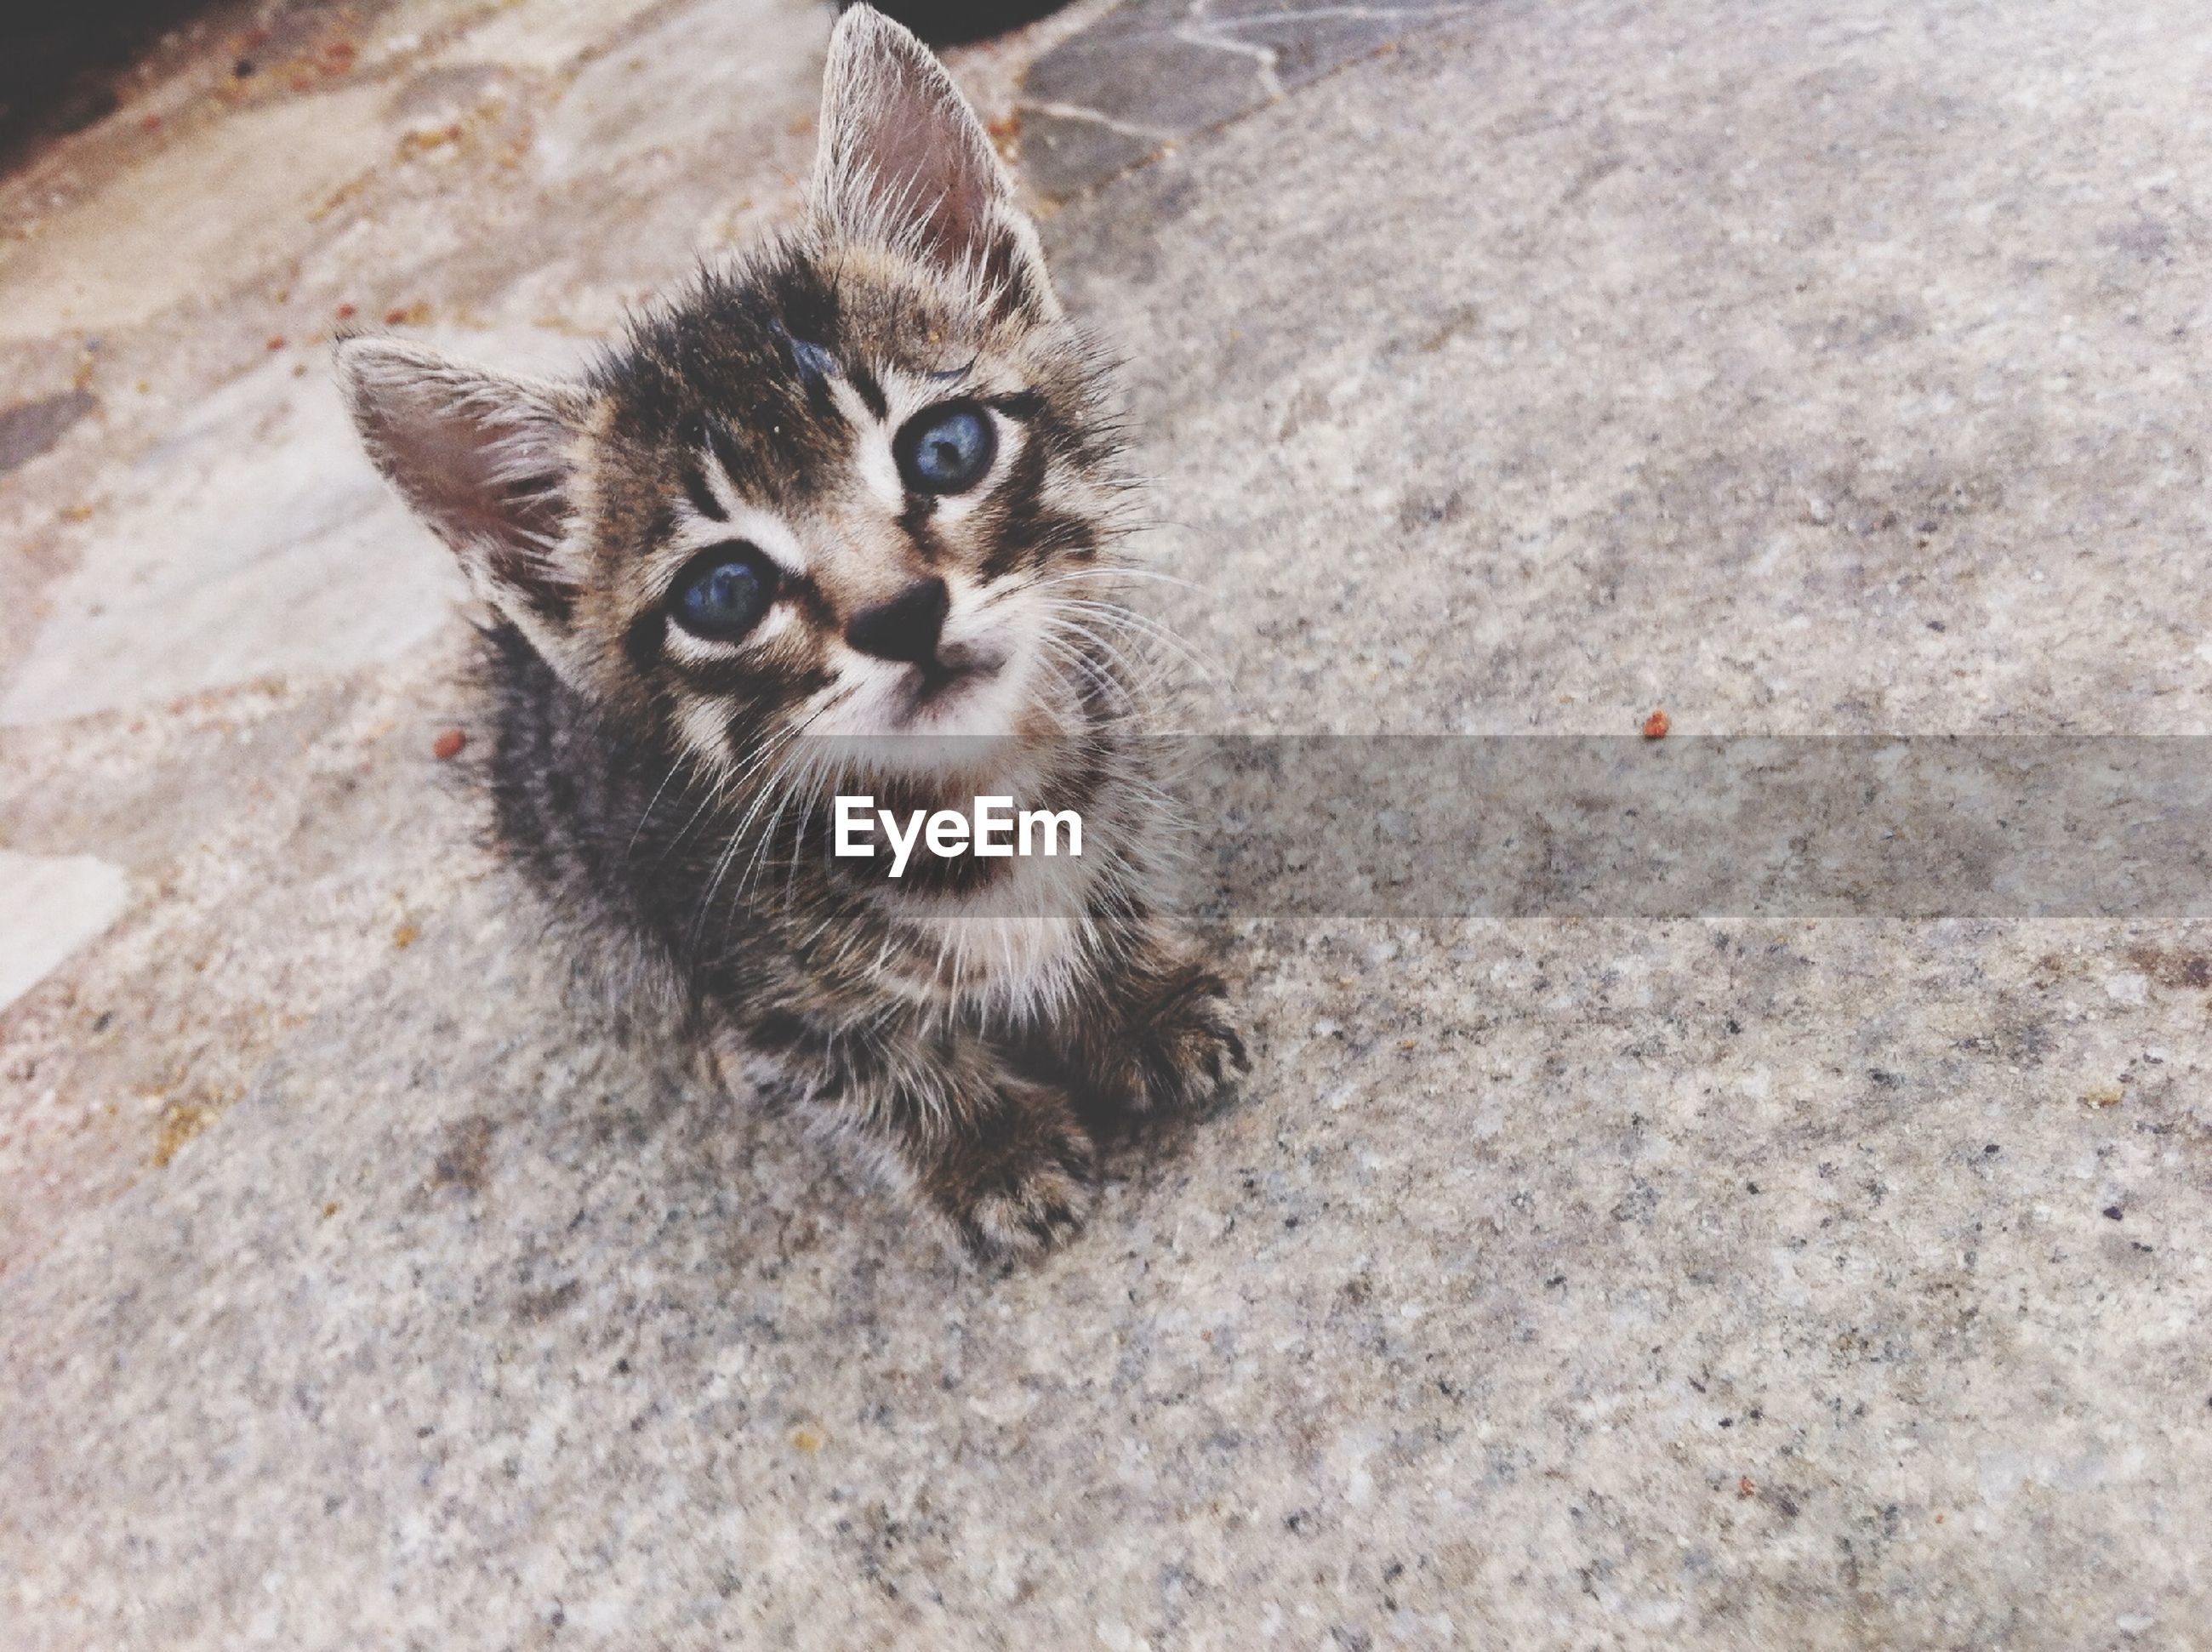 animal themes, one animal, domestic cat, mammal, cat, wildlife, feline, animals in the wild, whisker, pets, domestic animals, portrait, high angle view, looking at camera, close-up, sitting, relaxation, zoology, alertness, no people